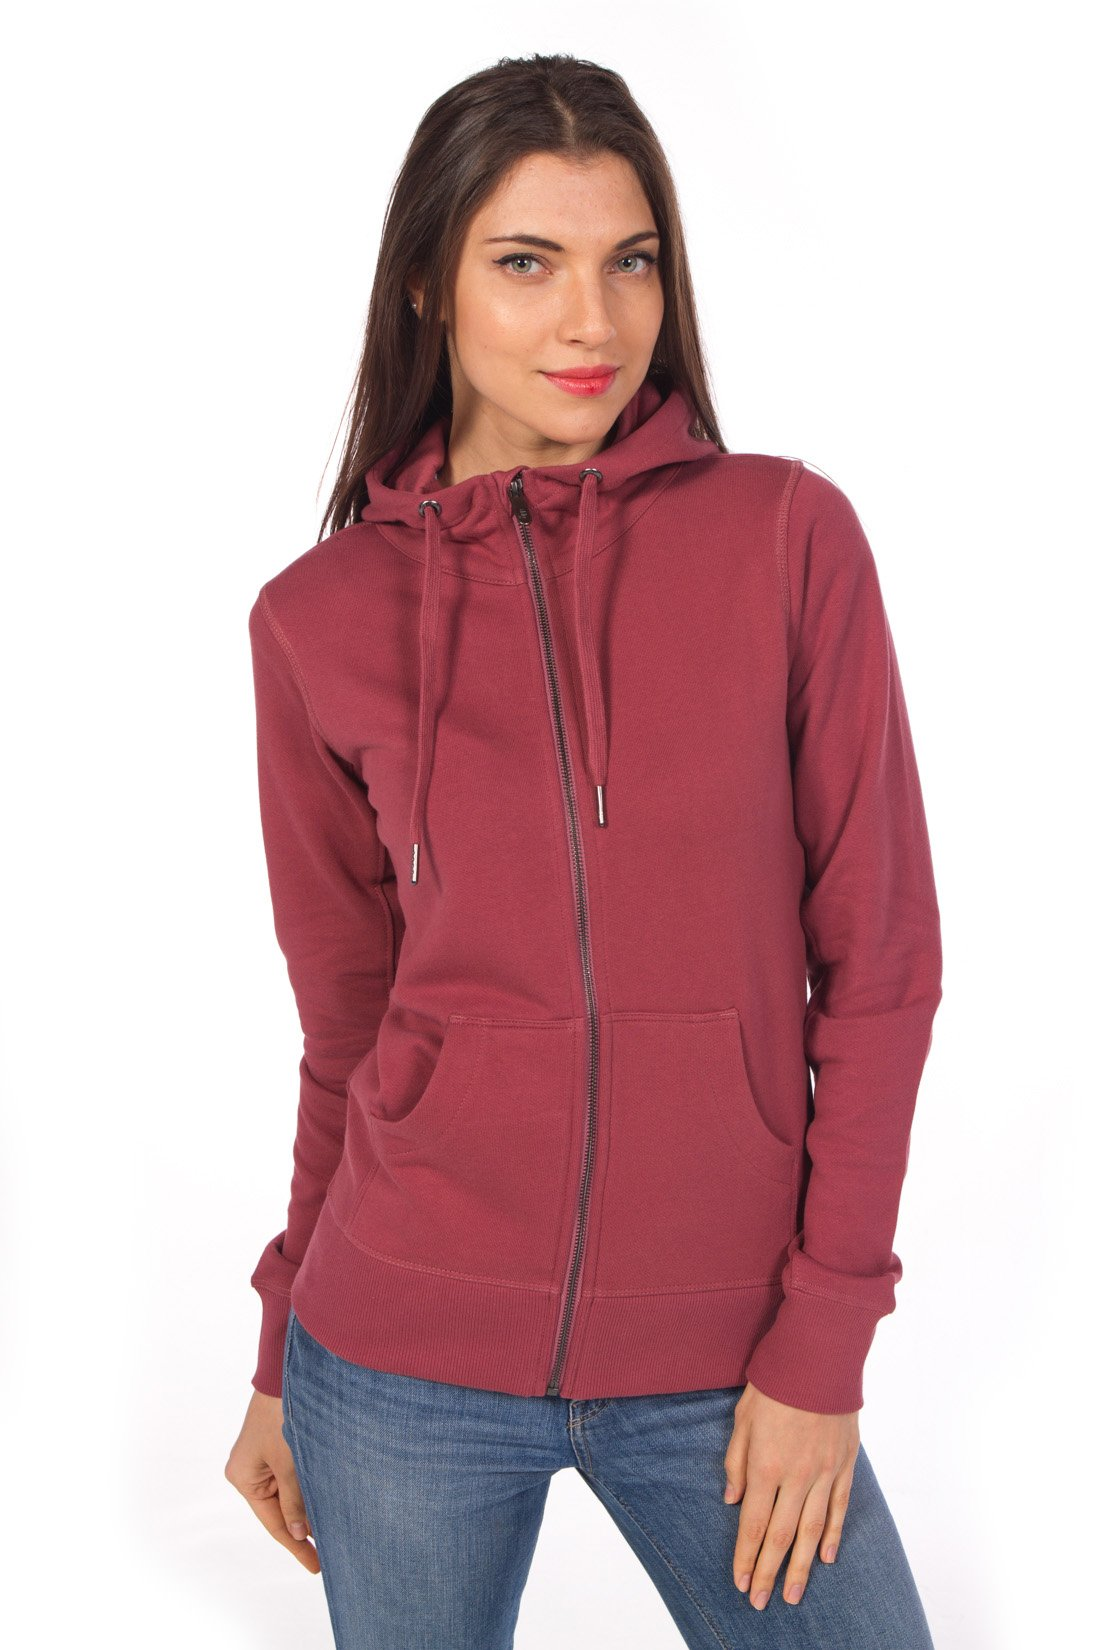 <p>For HER.{&nbsp;}{&nbsp;}</p><p>This Hannah Zip-up Hoodie from Ably is the perfect gift for the active mom.{&nbsp;}{&nbsp;}Ably is a Seattle founded brand of clothing/accessories made from natural materials that can repel and resist liquids and stains while also reducing odors from absorbing in its fabrics.{&nbsp;} This{&nbsp;} line of products{&nbsp;} reduces its customer's carbon footprint and supports sustainability. So PNW! And it's super flattering - basically, it's not your average hoodie!</p><p>Color: Plum/Price: $125</p><p>(Image: Ably)<br></p><p></p>